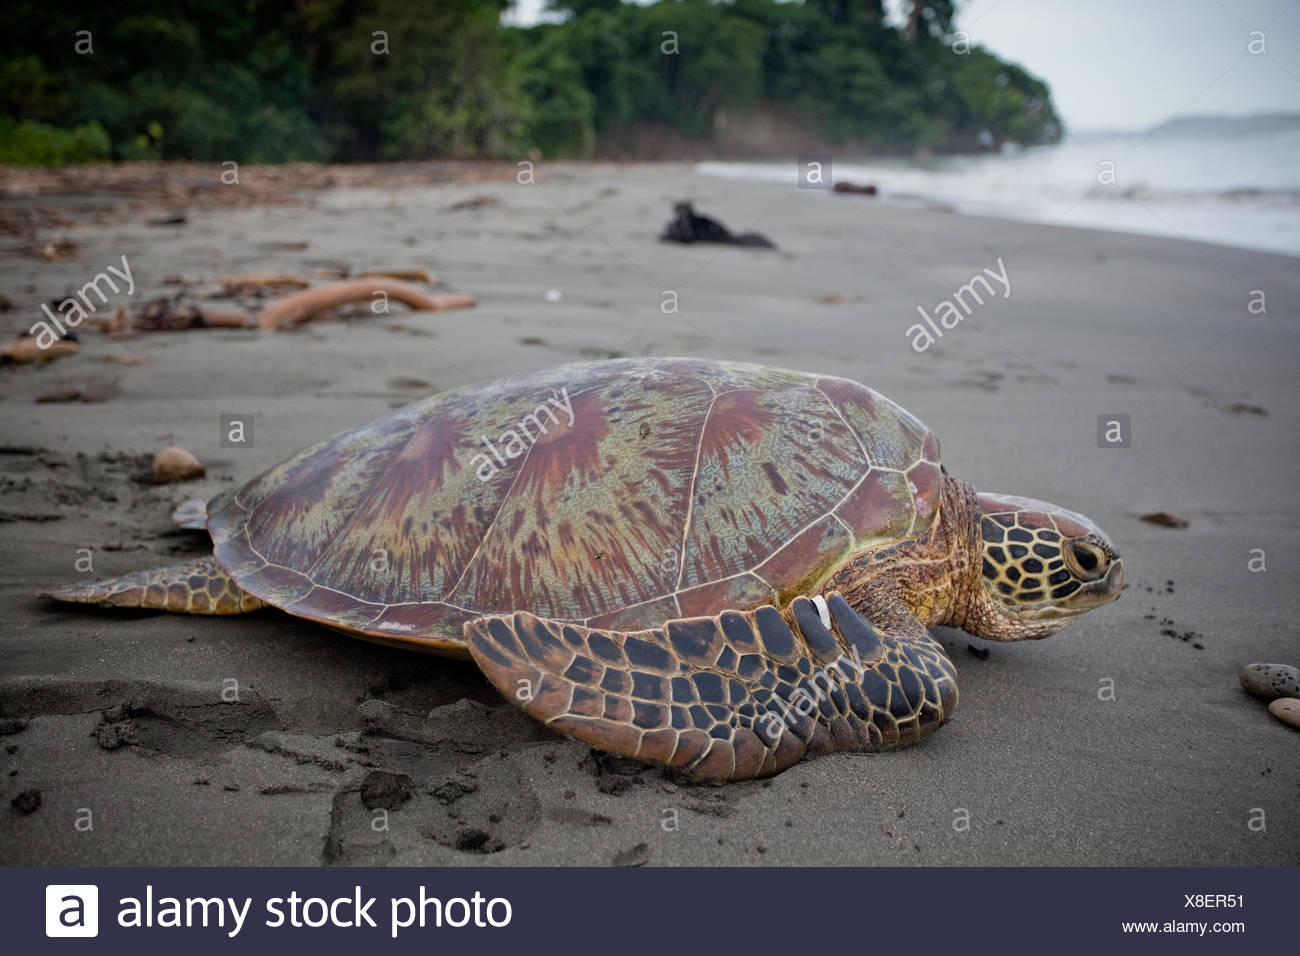 A tagged green sea turtle makes its way to the sea. Stock Photo